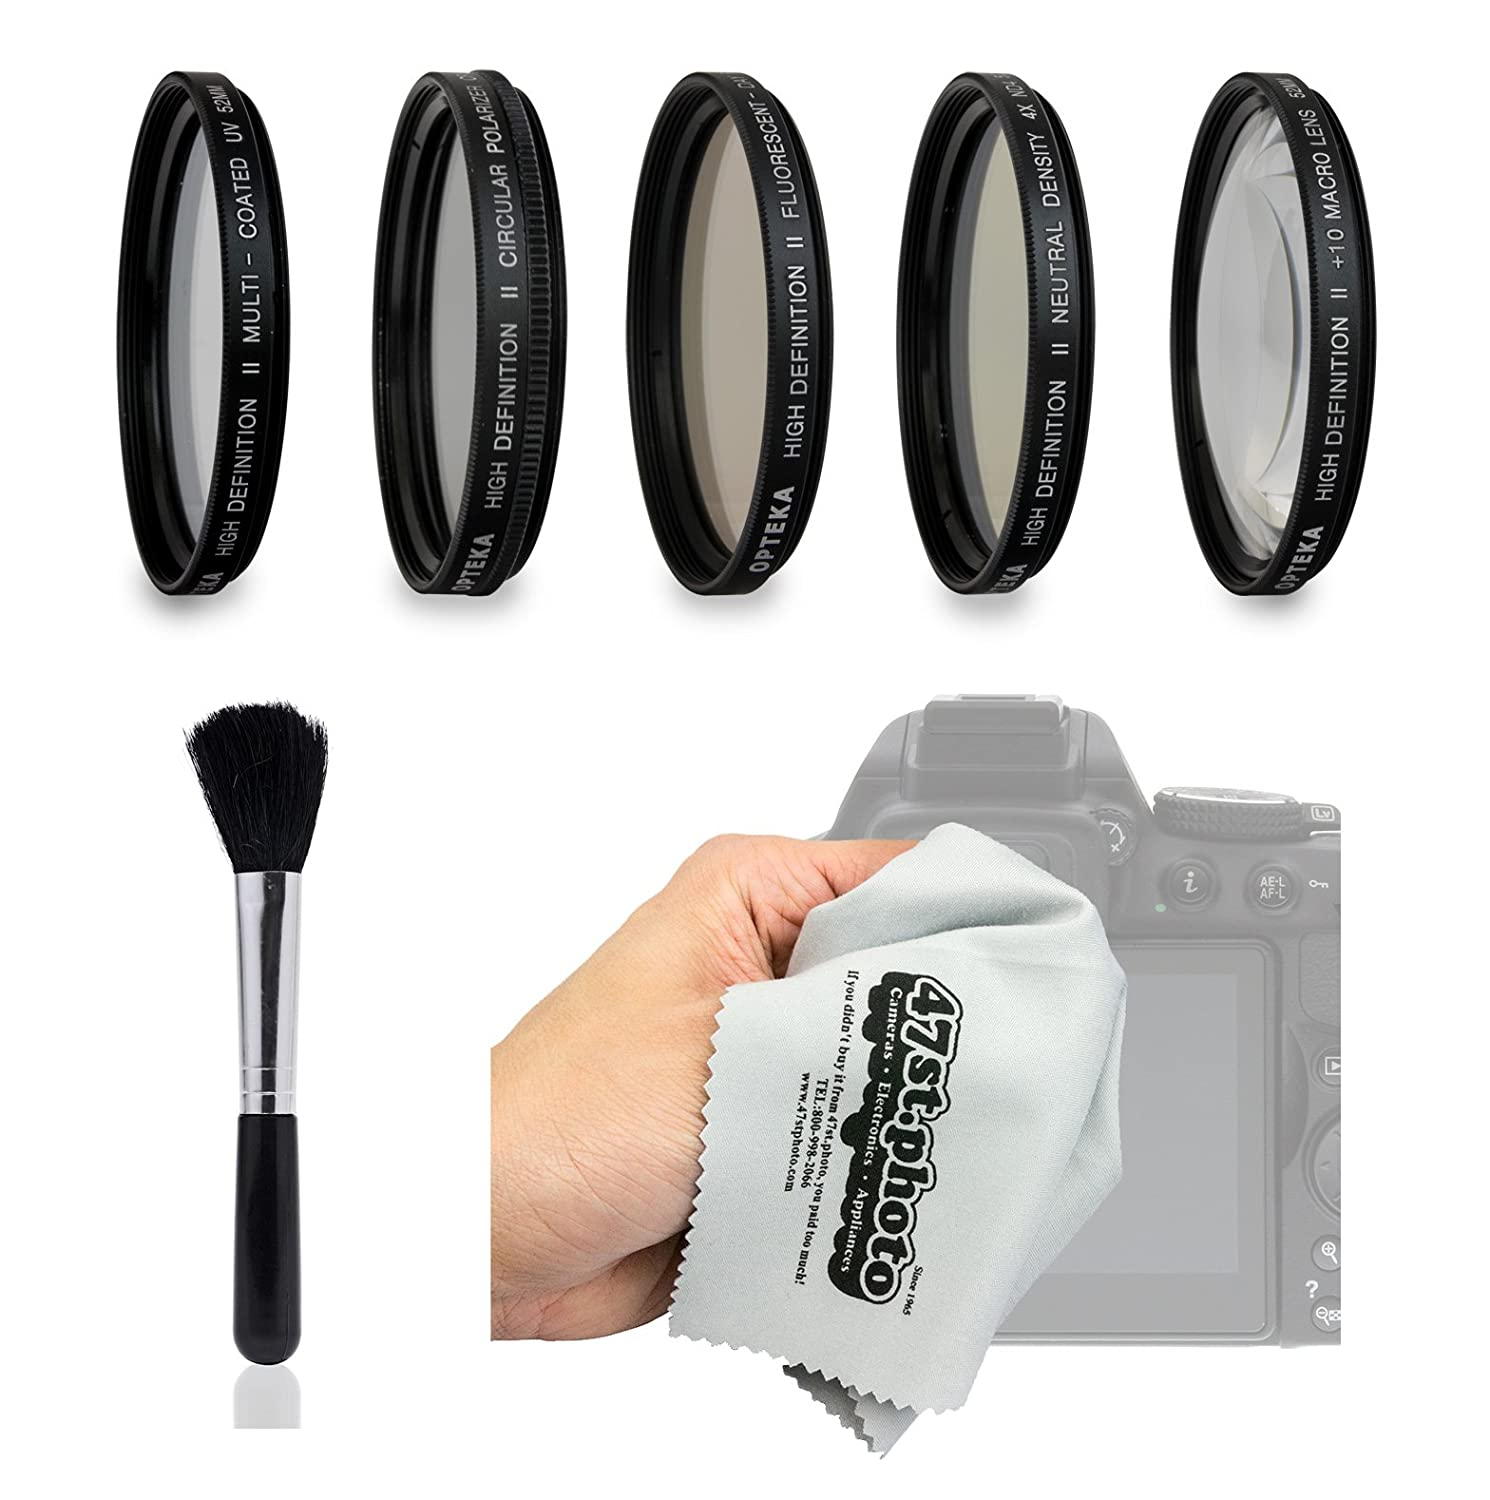 Amazon.com : Opteka HD Filter Kit Includes UV, CPL, FL, ND4, 10x Macro, Dust Brush and Microfiber Cleaning Cloth for Canon EOS-M/EOS-M3 Compact Digital ...